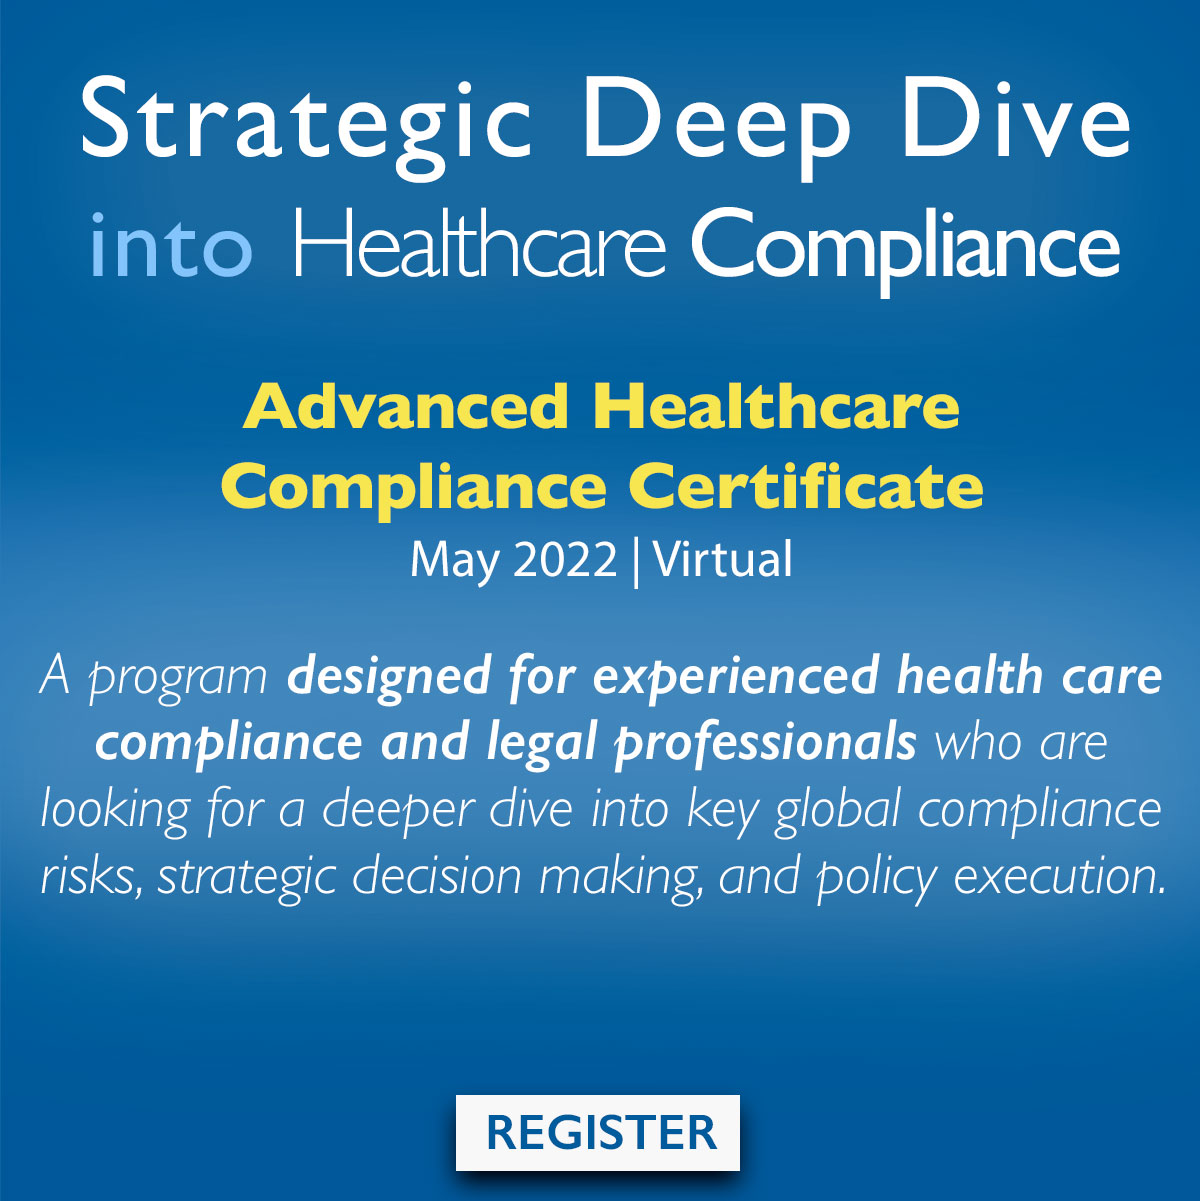 Register for a Deep Dive into Healthcare Compliance in just 3 days!